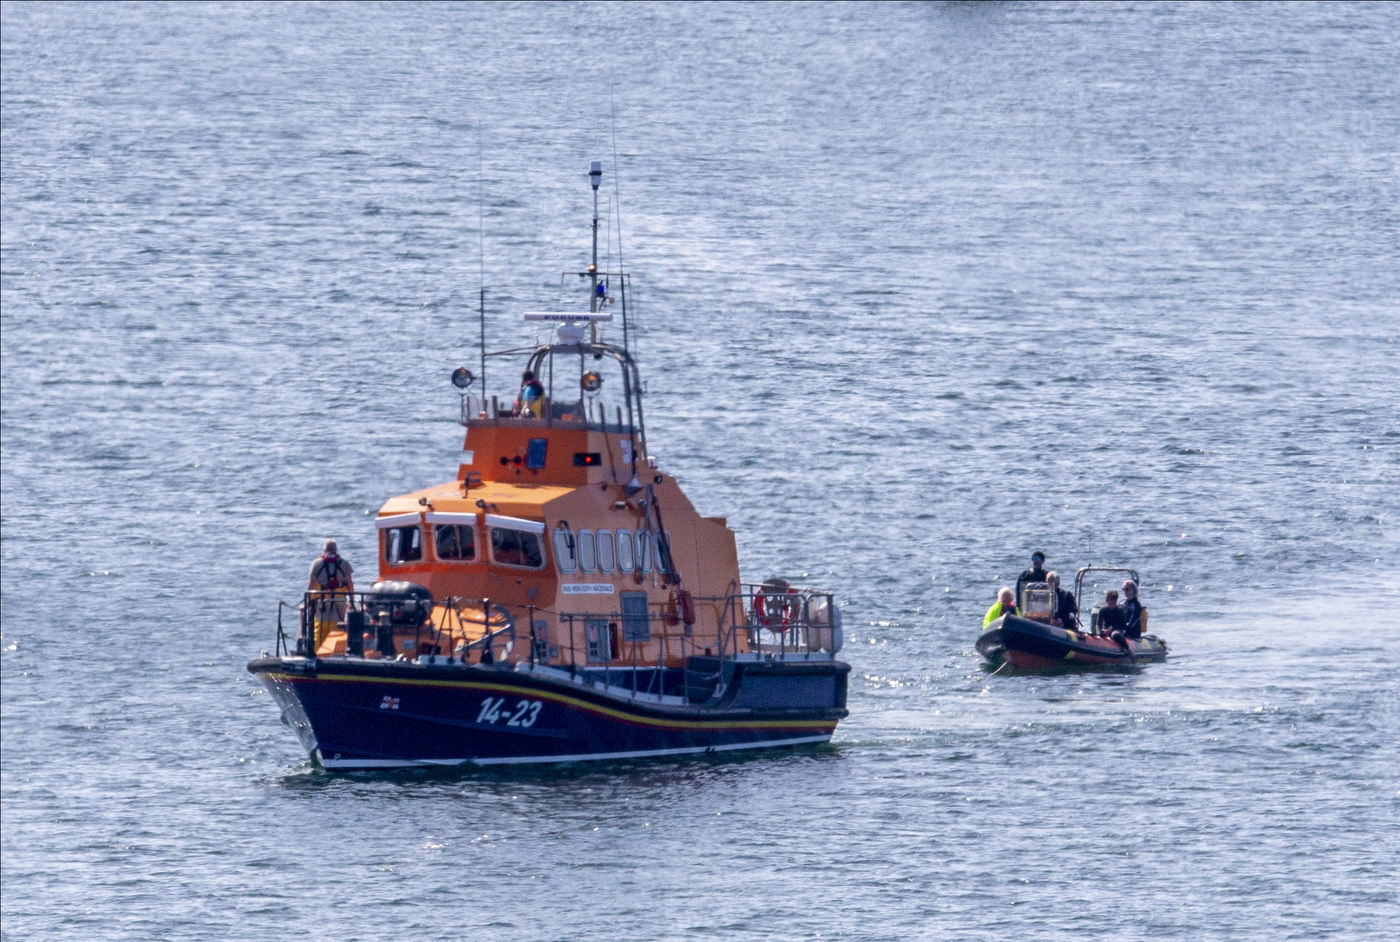 Oban Lifeboat attended three incidents following a busy weekend.